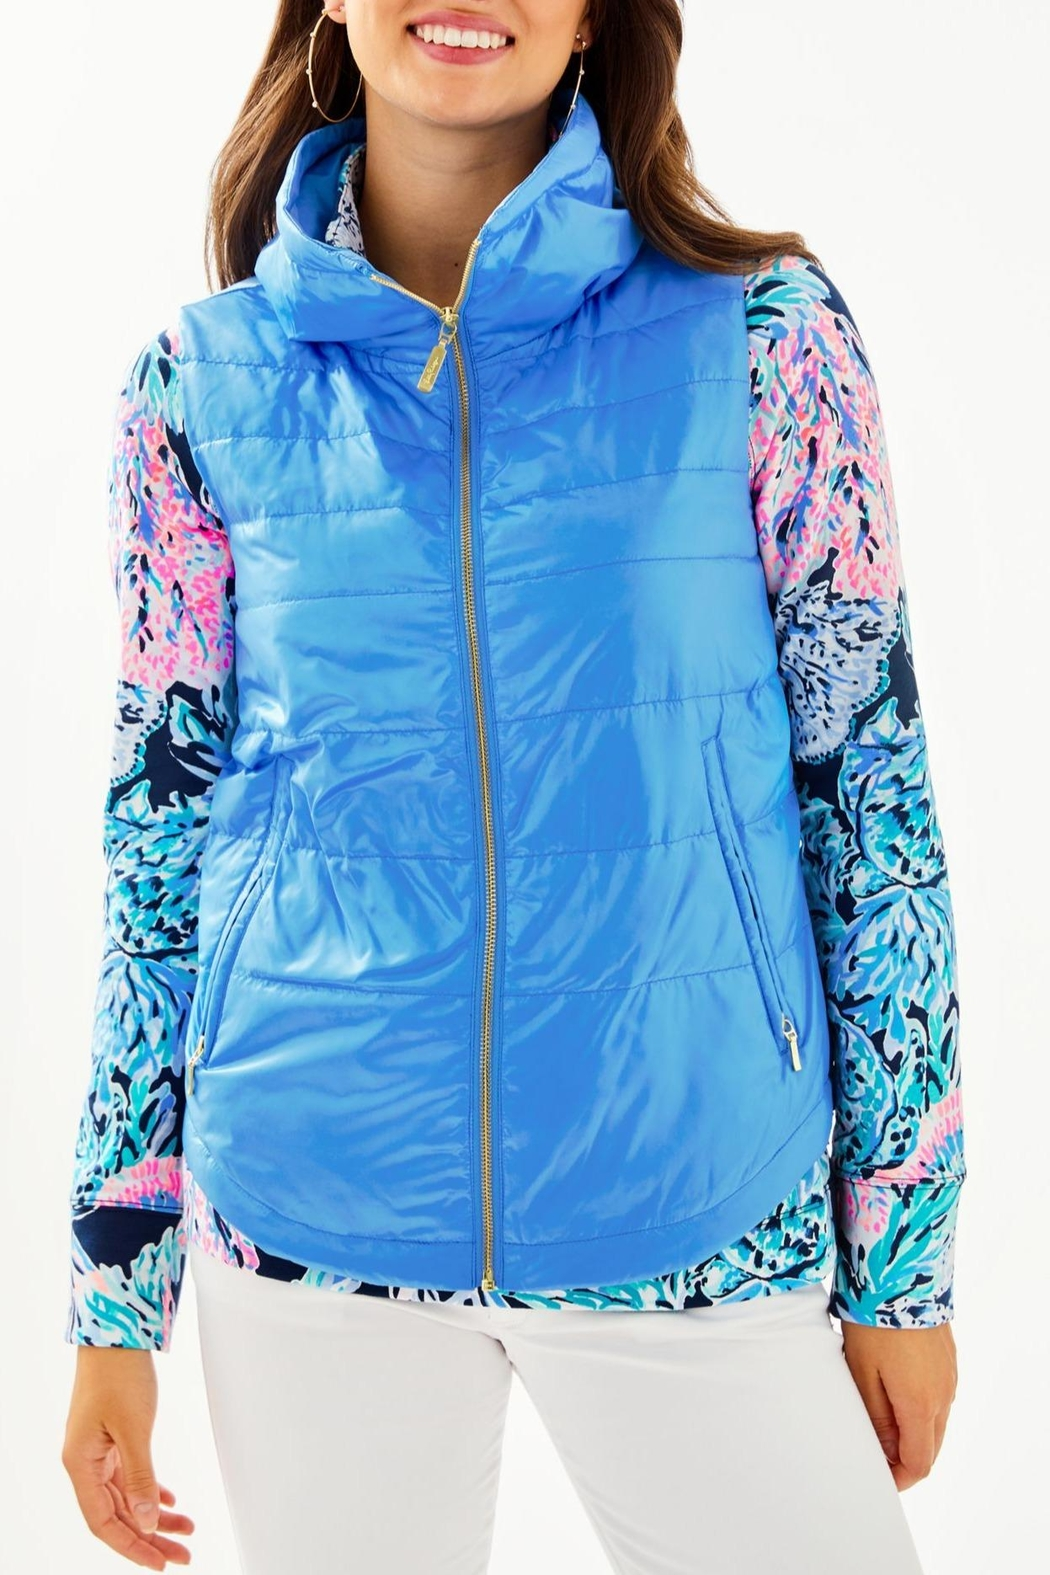 Lilly Pulitzer Palm Paradise Puffer-Vest - Main Image